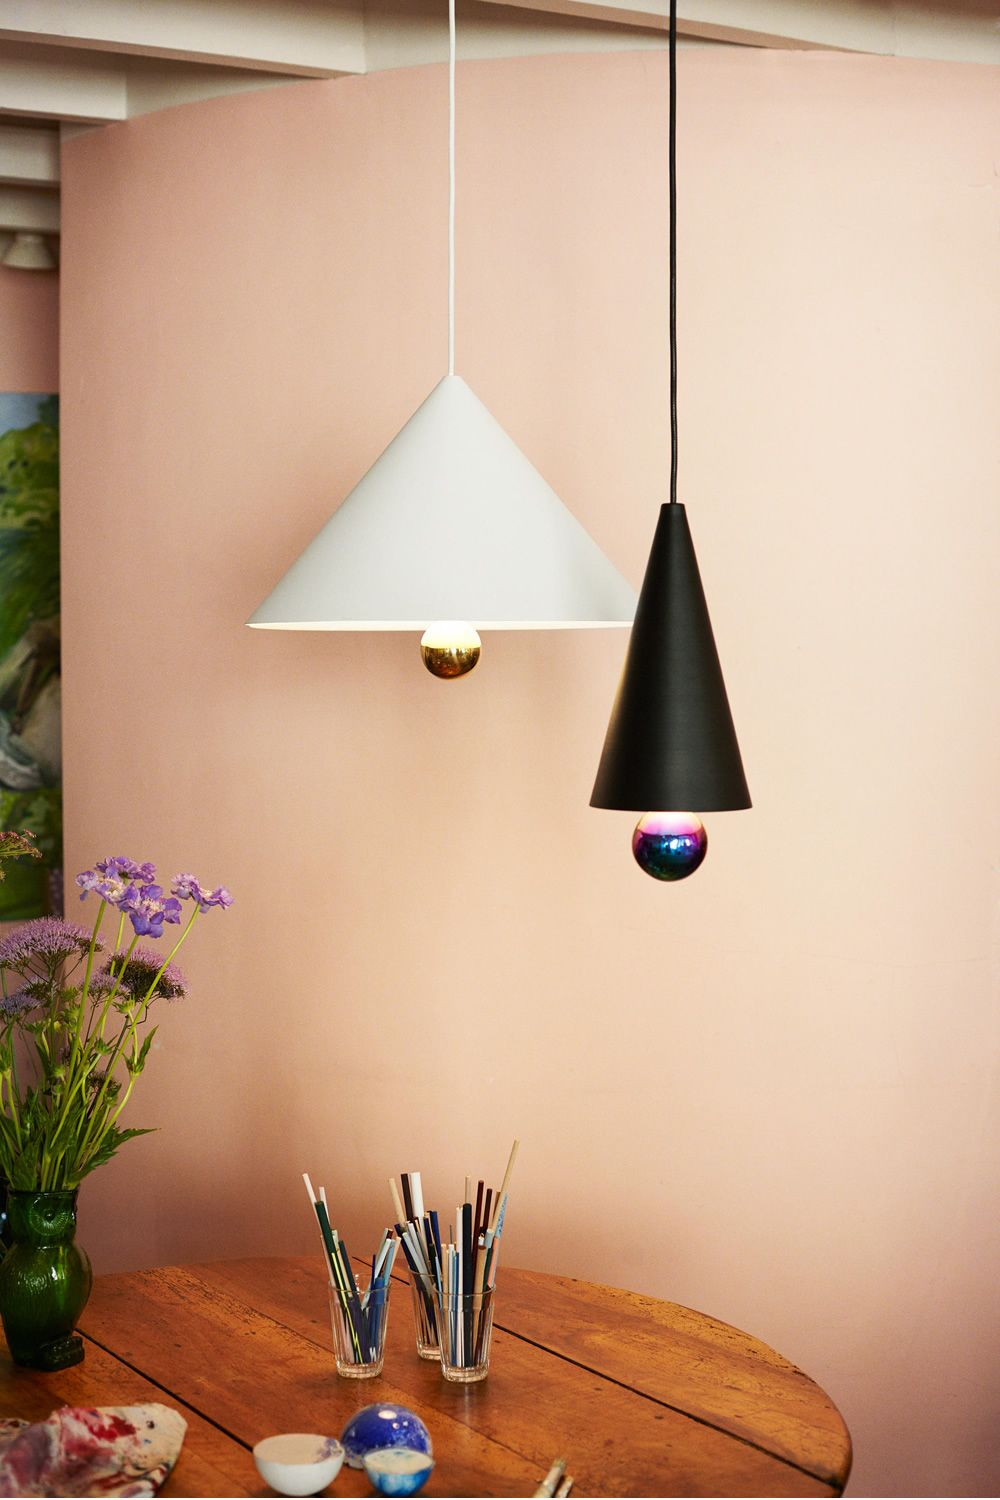 Suspension lamp made of black and white metal and plexiglass (Size: Small, Big)